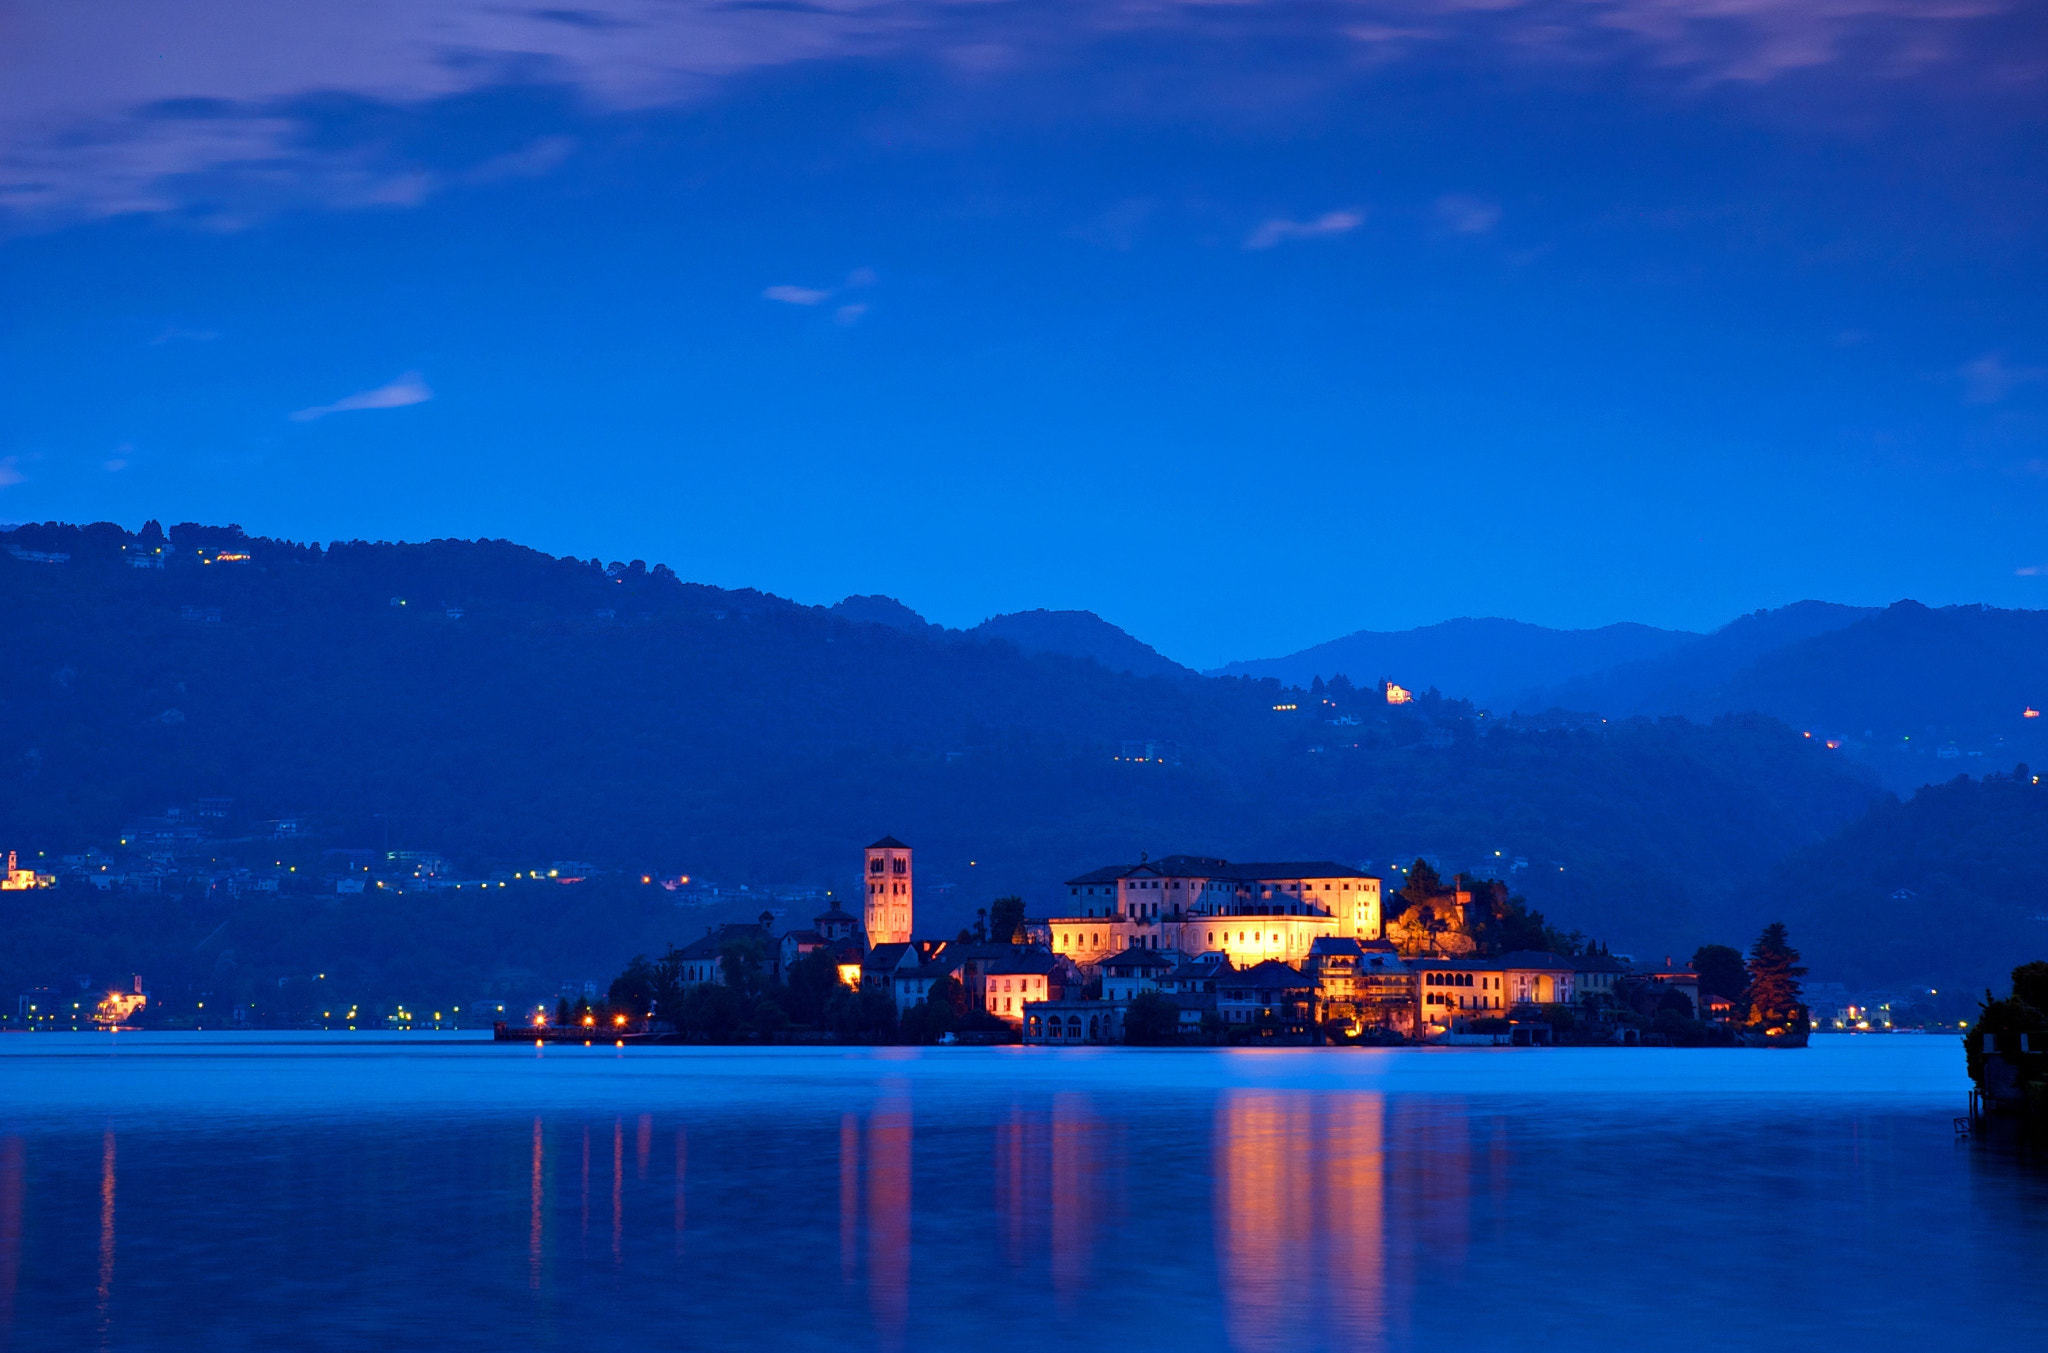 Photograph Orta Blue Hour by stefanocarda on 500px